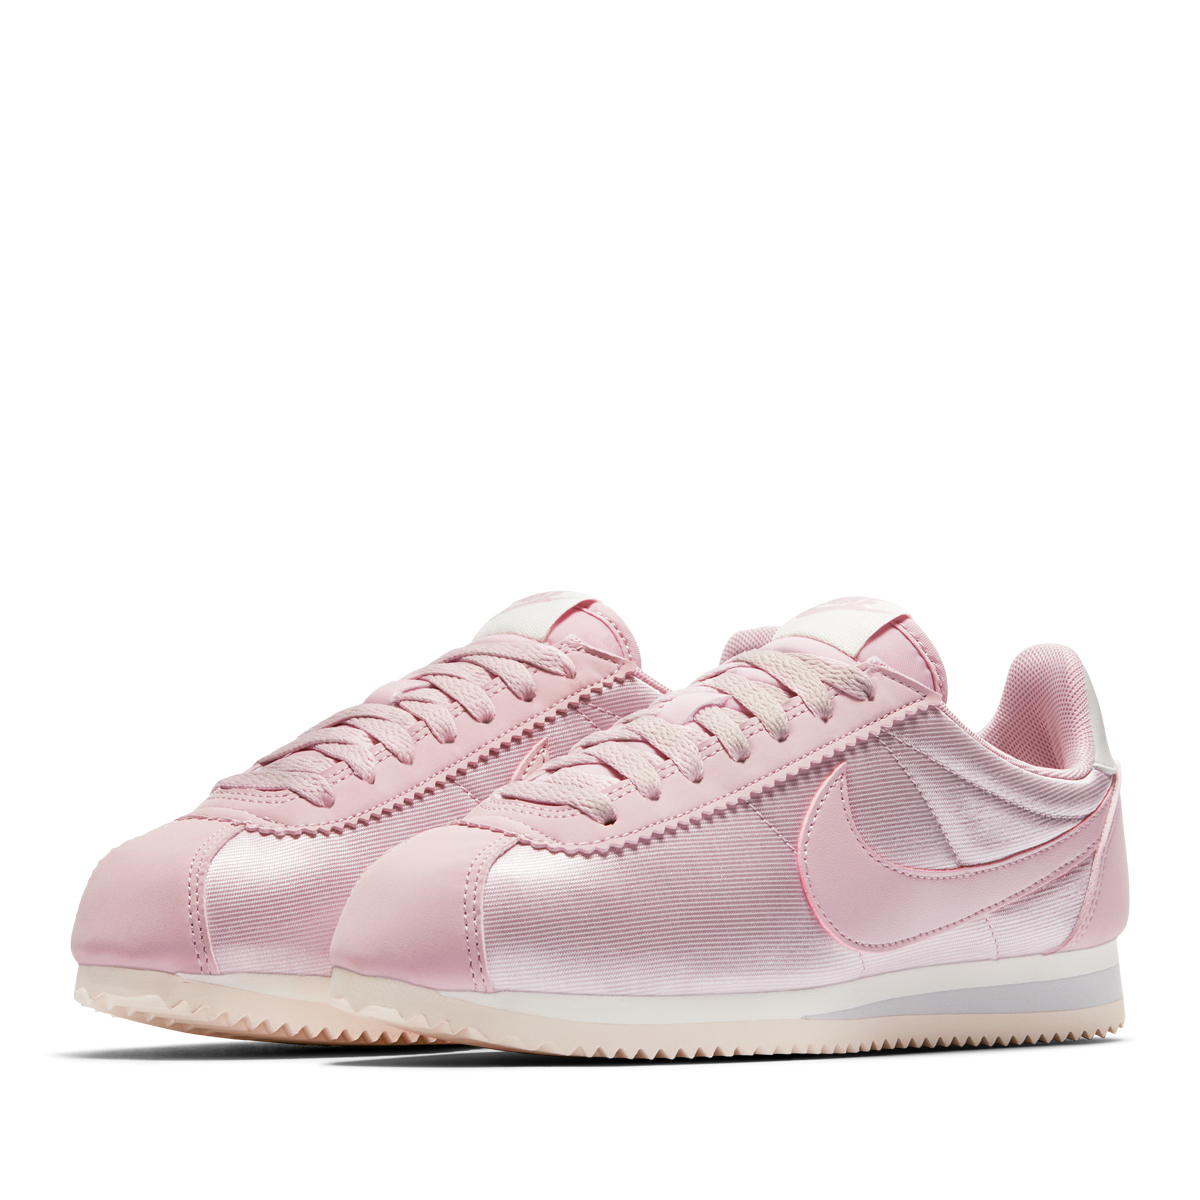 f2ccebc4e834 NIKE WMNS CLASSIC CORTEZ NYLON (ナイキウィメンズクラシックコルテッツナイロン) PARTICLE ROSE PARTICLE  ROSE-VAST GREY 18SP-I